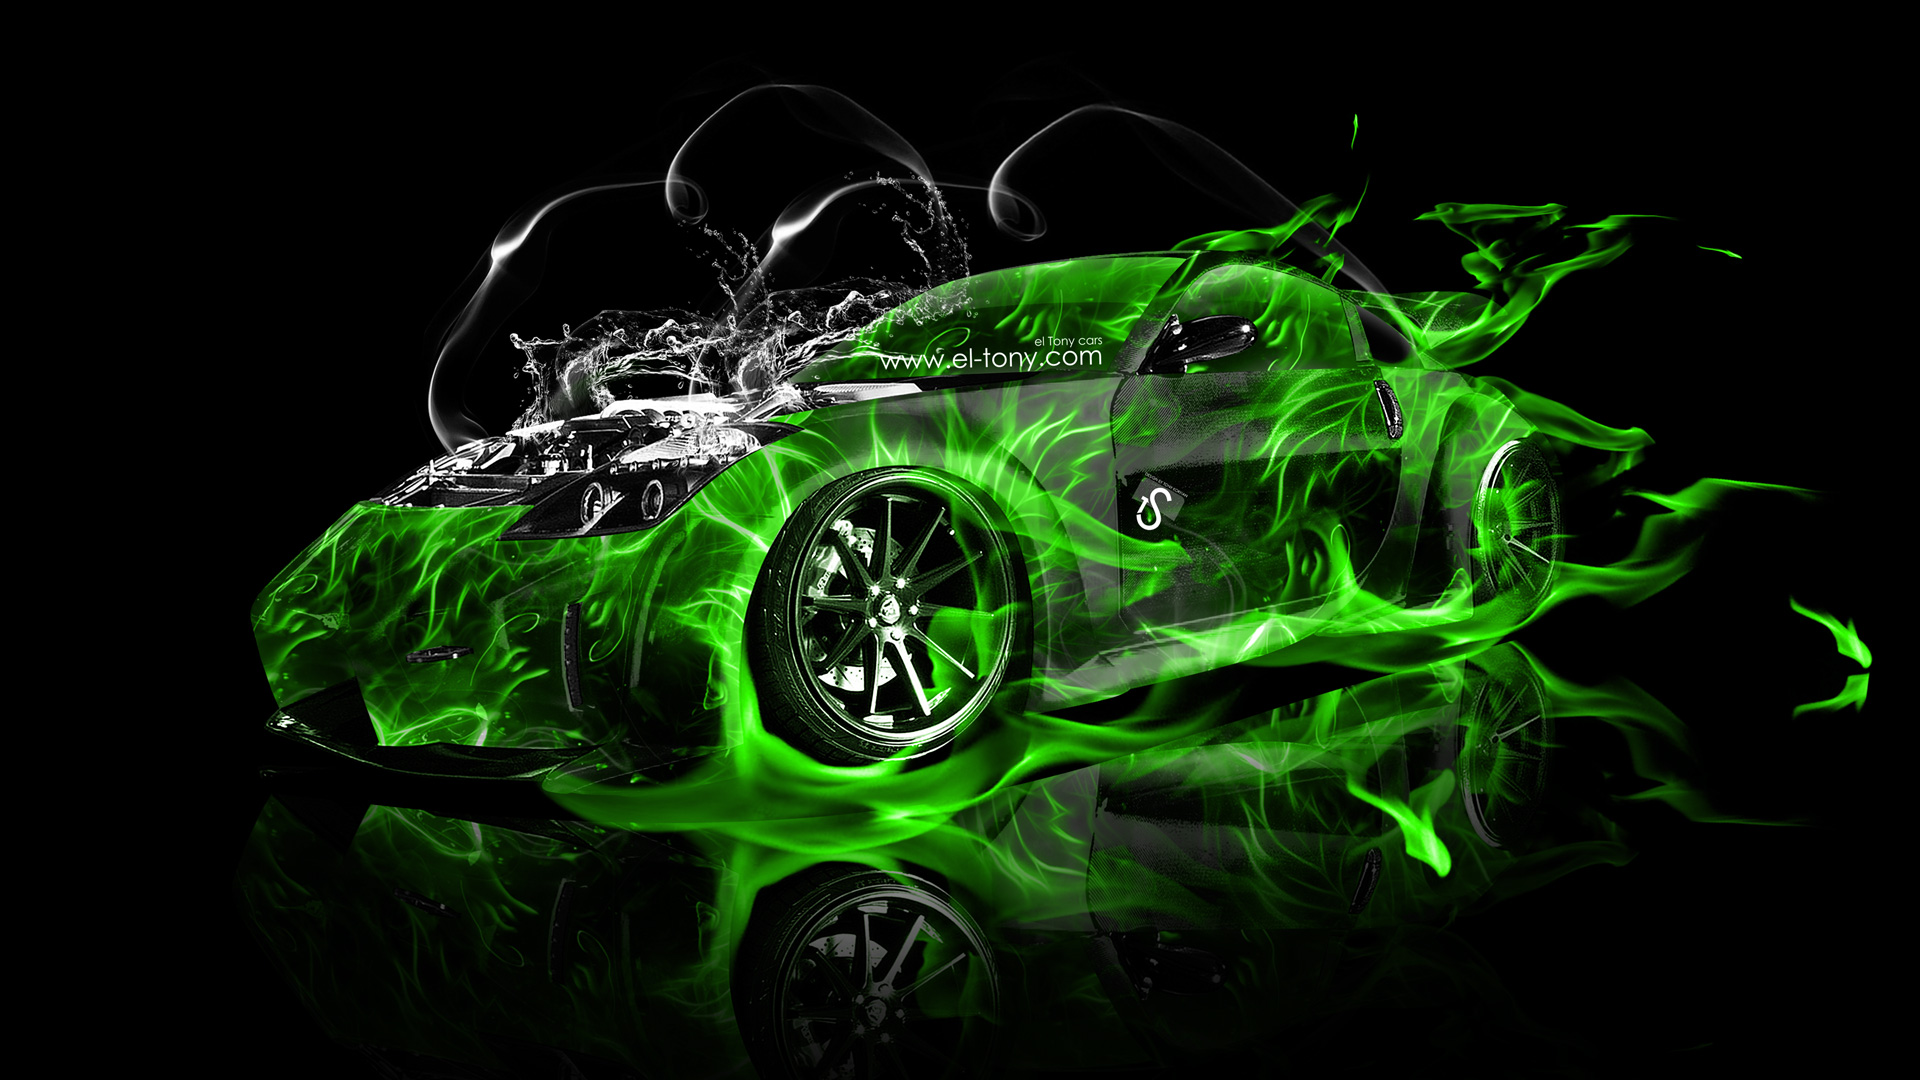 Mazda Rx7 2015 >> Nissan 350Z VeilSide Water Engine Fire Abstract Car 2013 ...